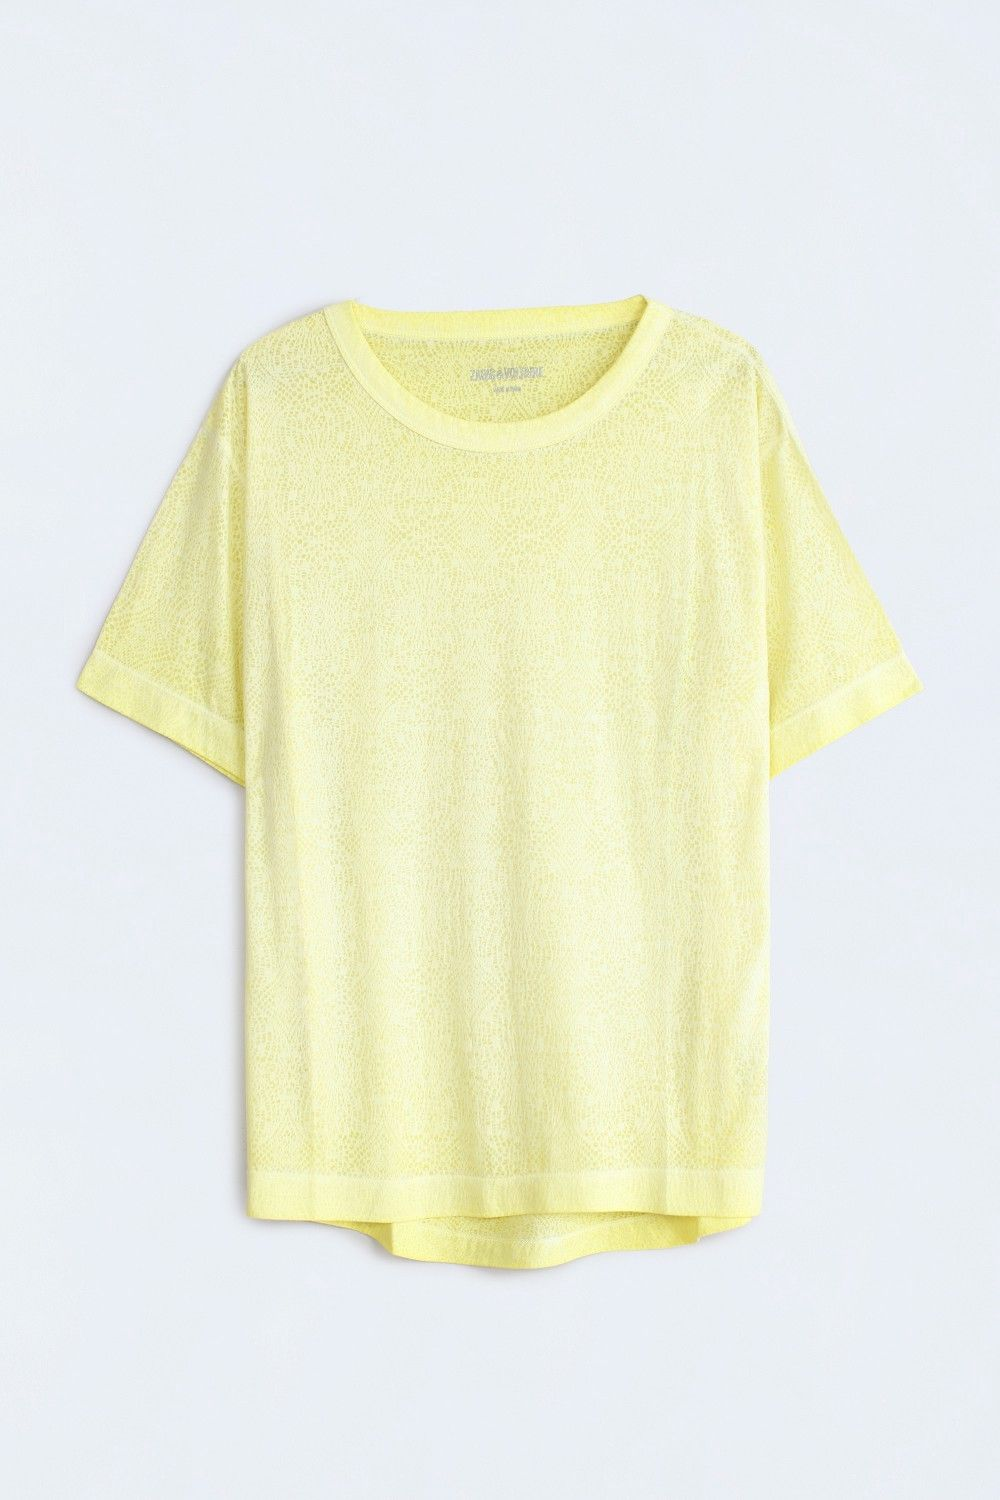 Zadig & Voltaire Women's Anny Burn Sheer T Shirt, NWT, $120